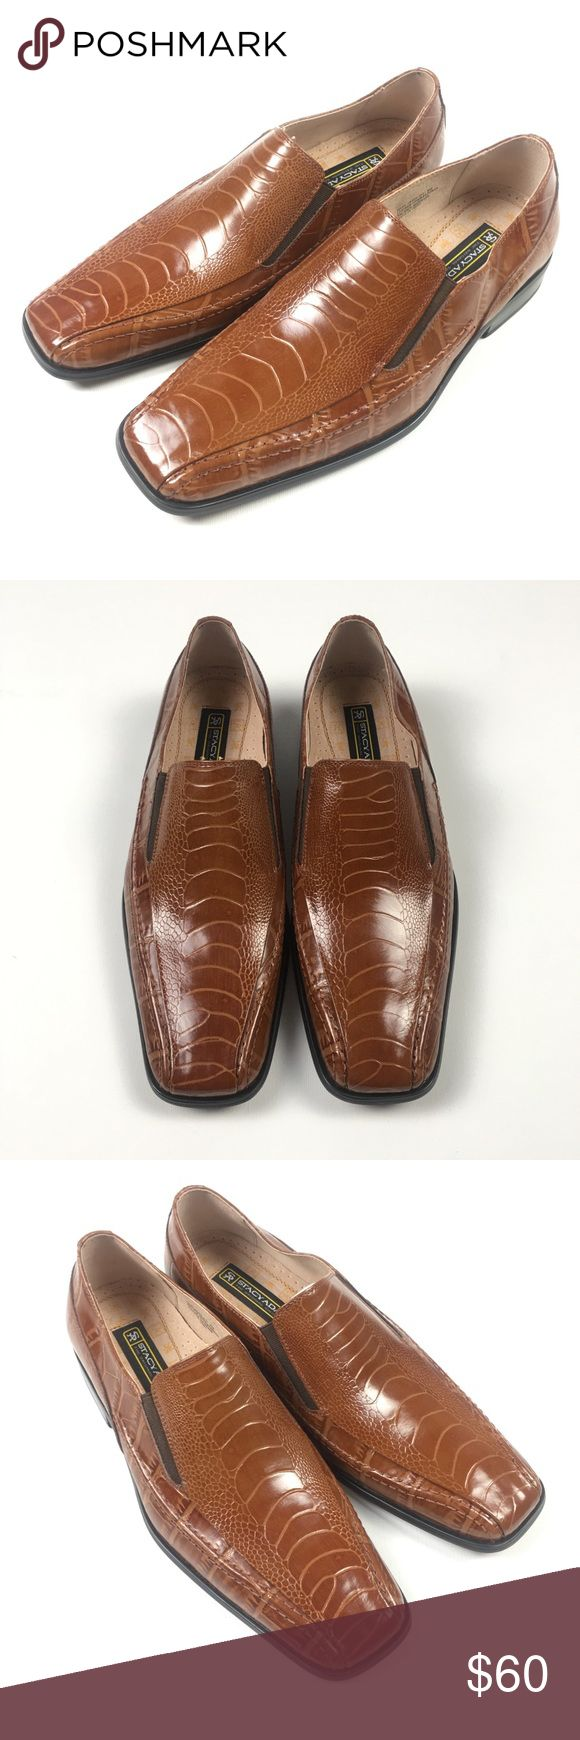 Stacy Adams Faux Croc Teague Dress Shoes 8 Brown Brand New w / Original Box Stacy Adams Shoes Loafers & Slip-Ons